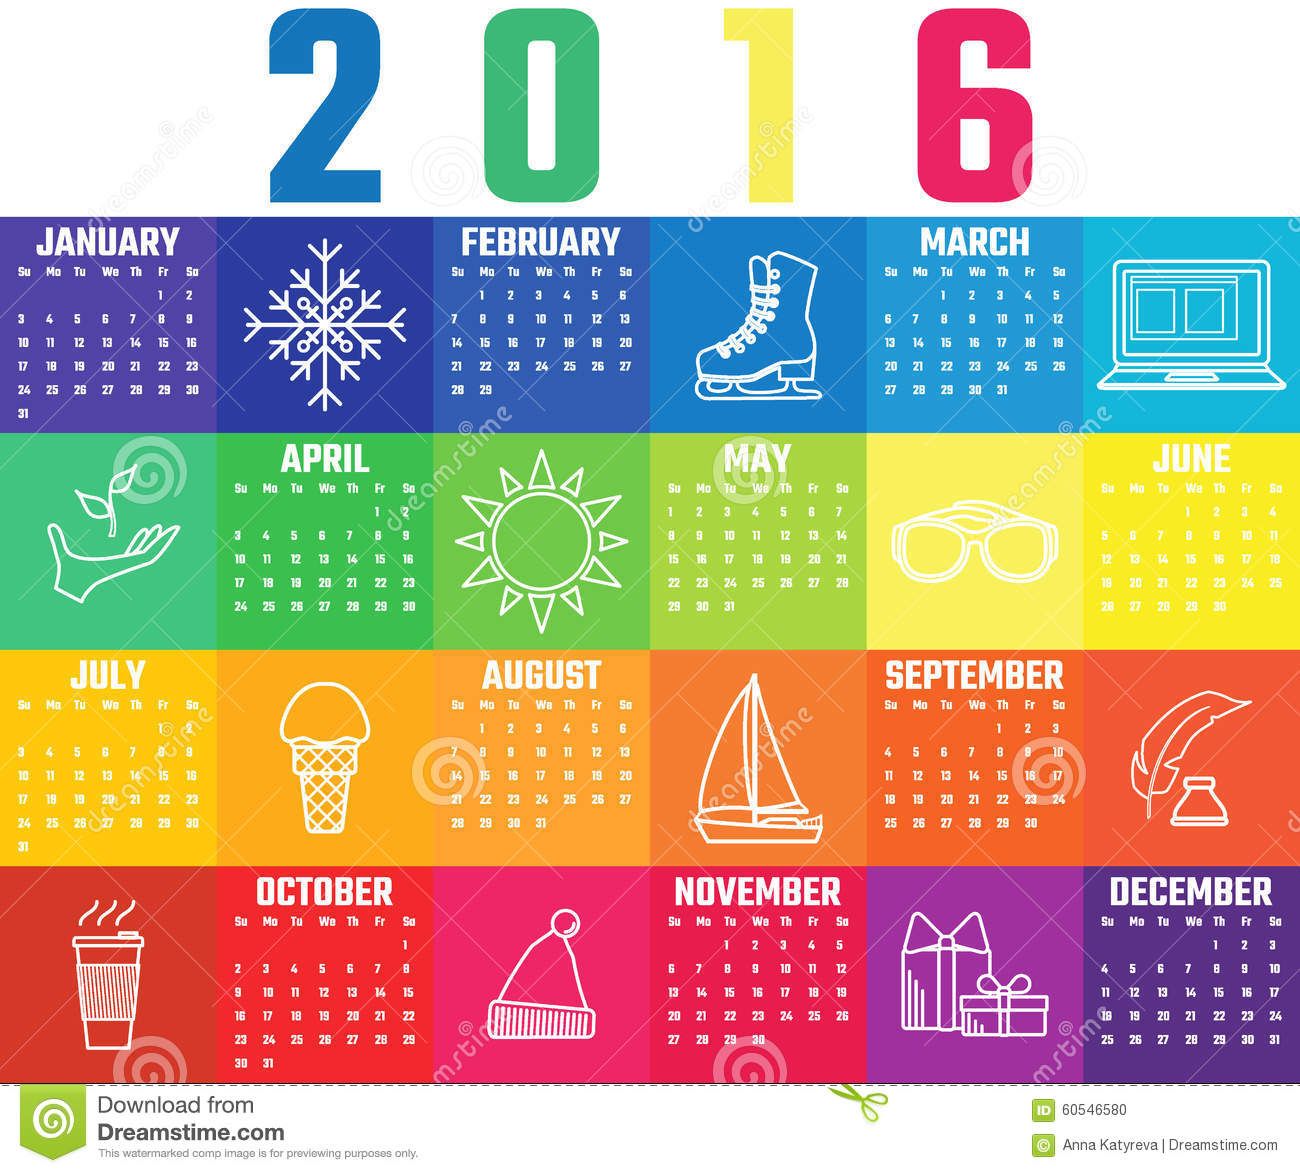 Illustration Calendar Design : Calendar template stock illustration image